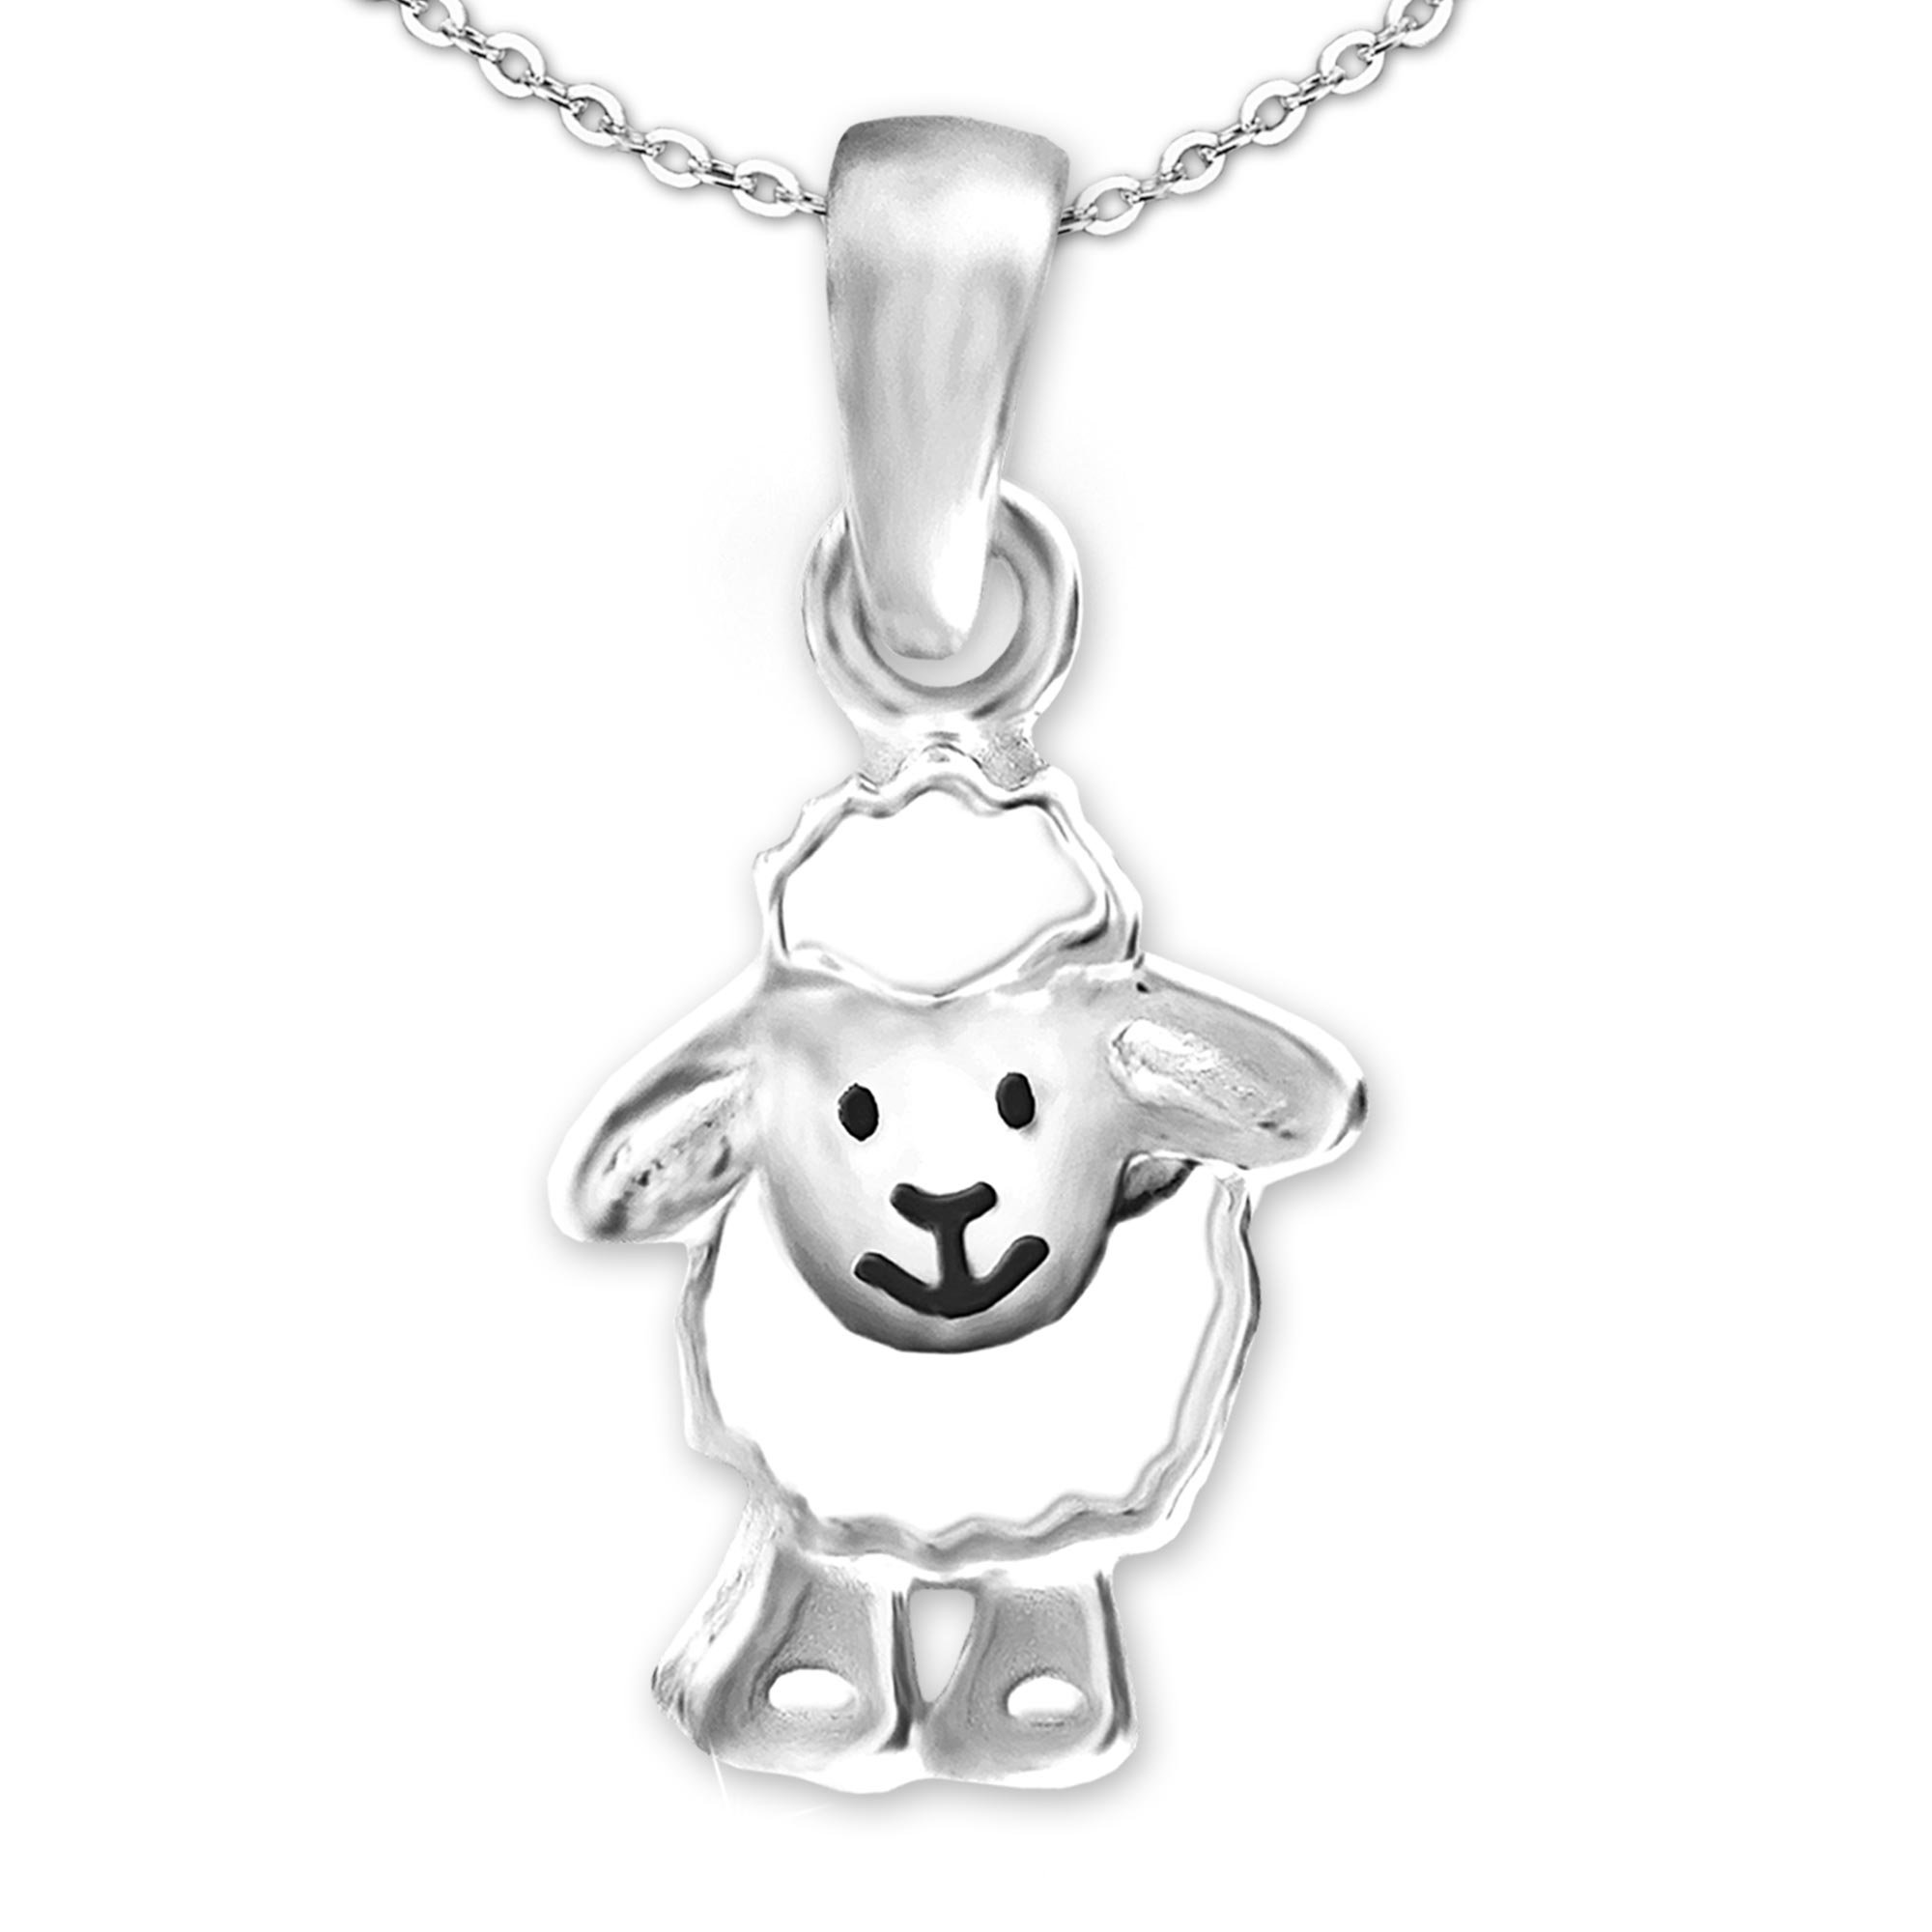 Clever Schmuck Silver Small Pendant Sheep Funny Laughing Face White and Black Gloss and Anchor Chain 42 cm 925 Sterling Silver in Case